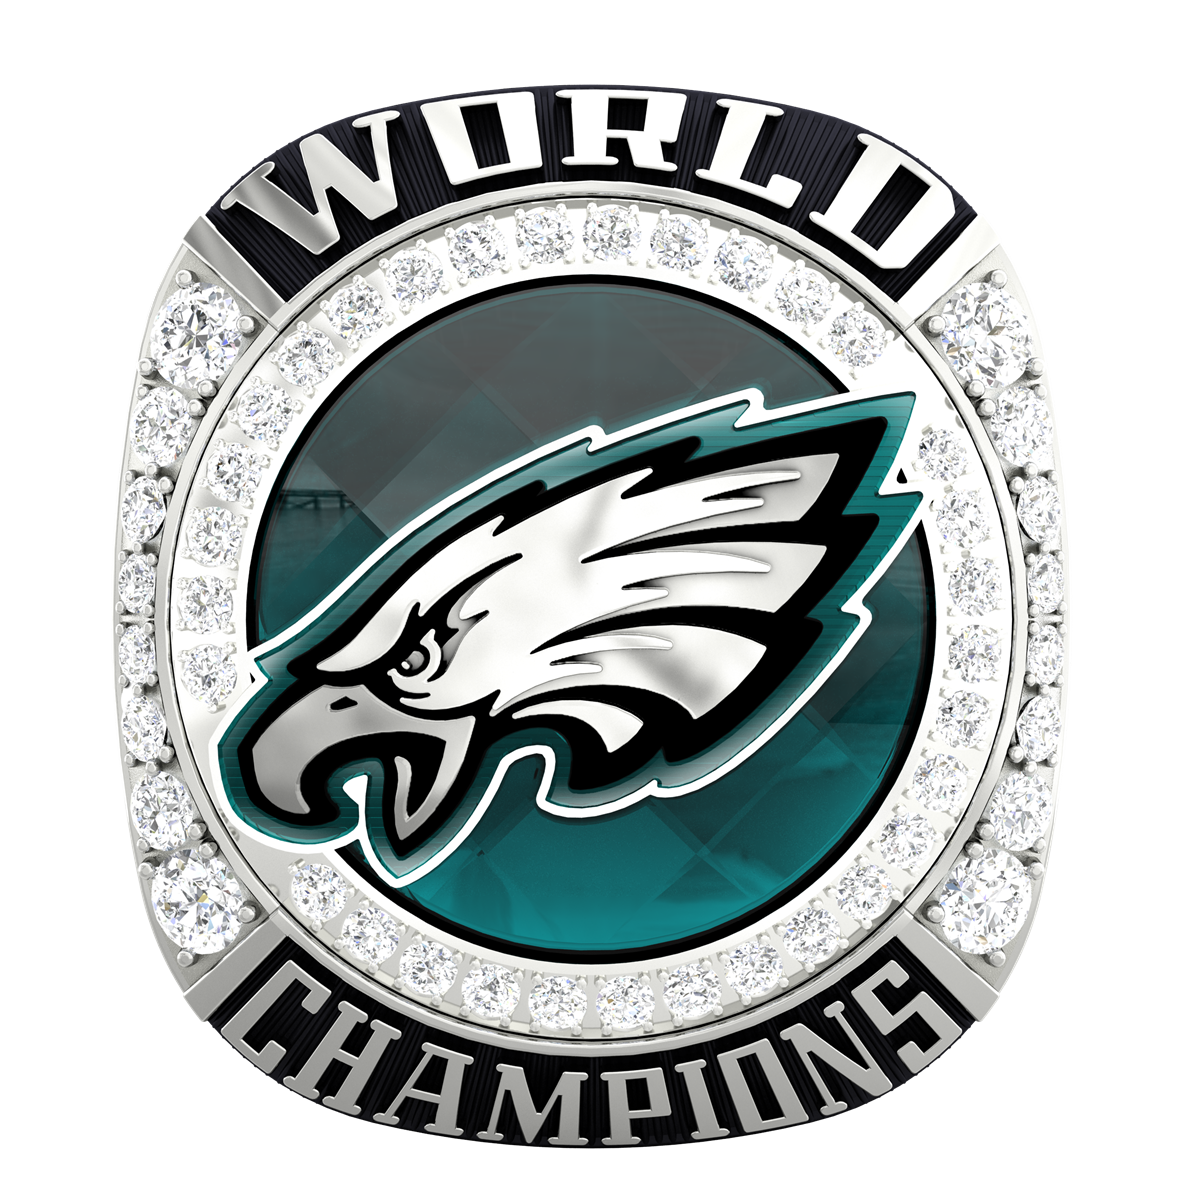 Super bowl ring png. How to purchase an